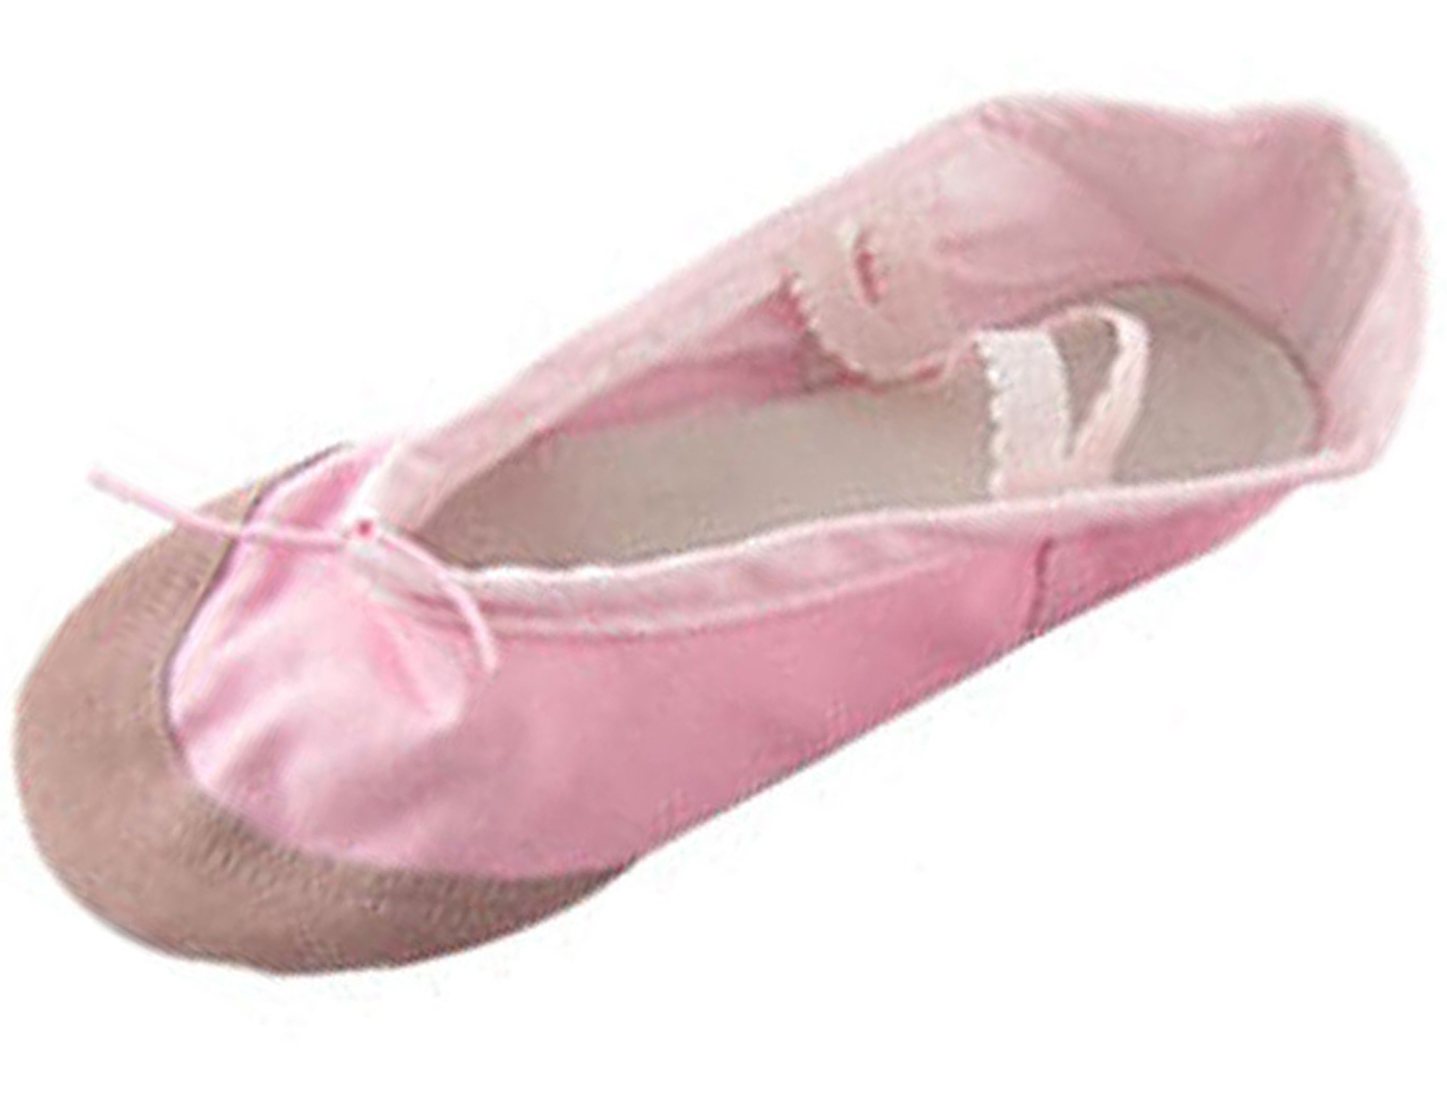 US Size 5.5 Pink Flat Shoes Dancing Ballet for Ladies